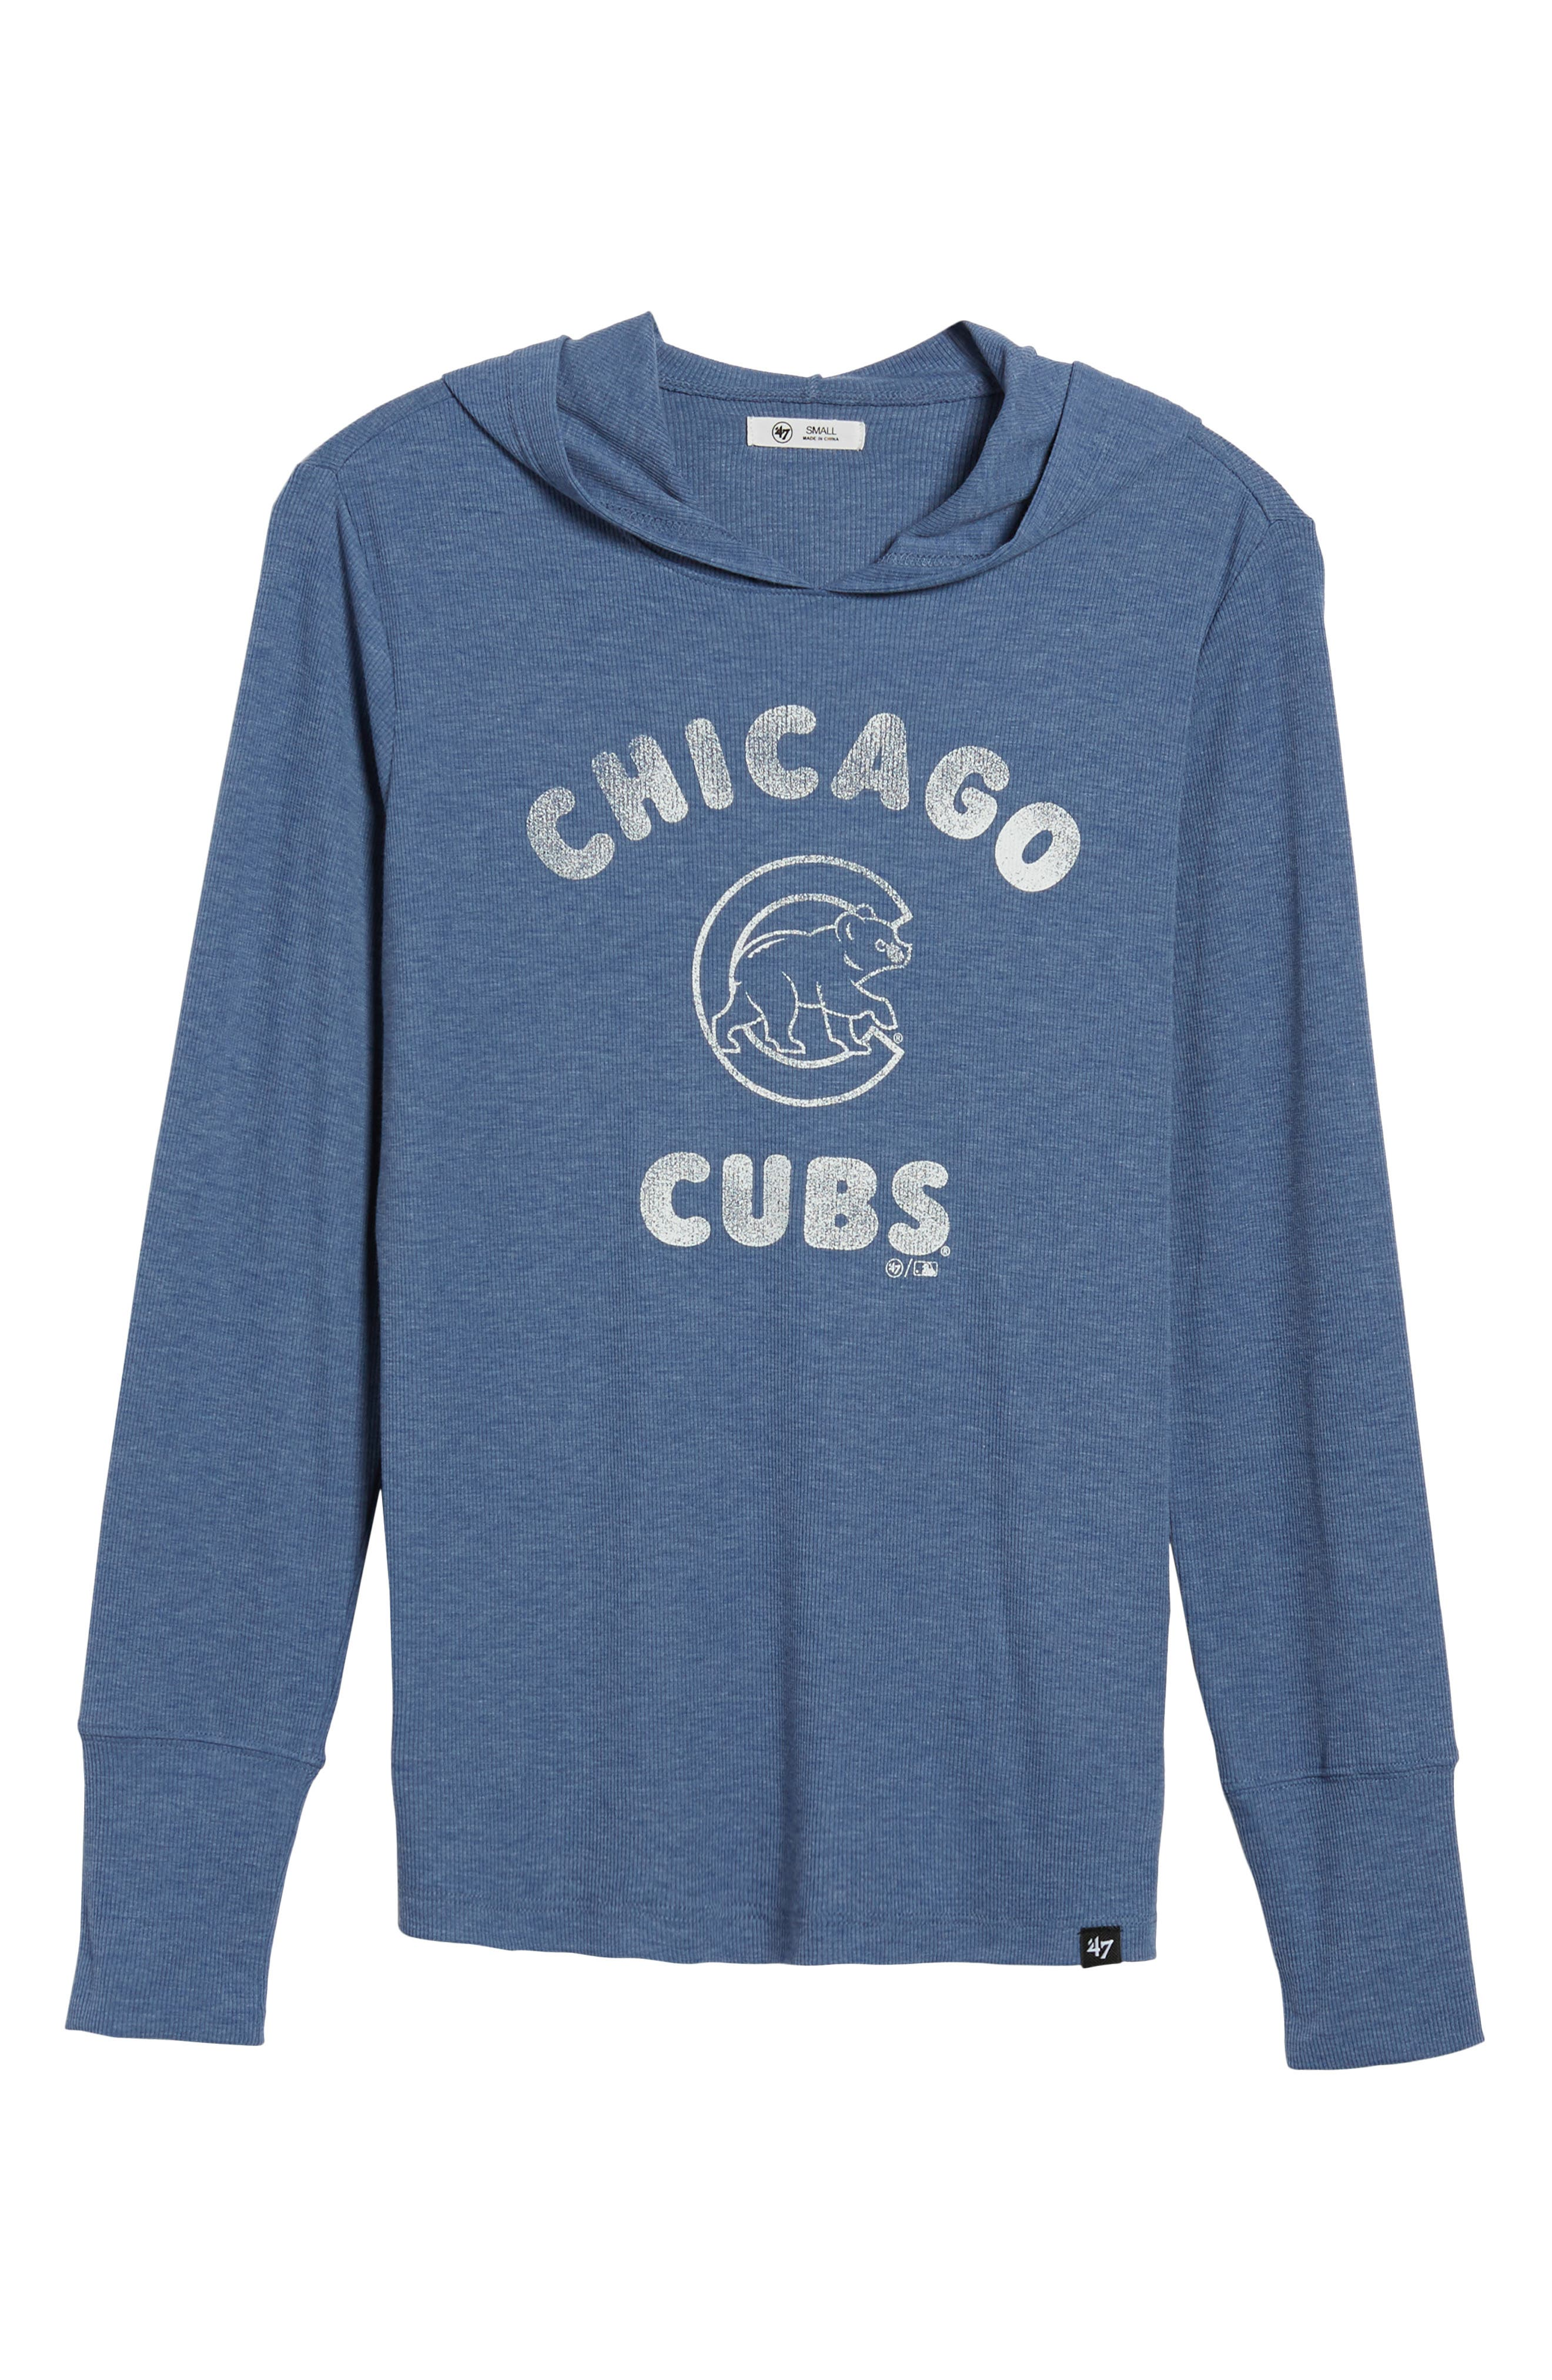 Campbell Chicago Cubs Rib Knit Hoodie,                             Alternate thumbnail 7, color,                             Bleacher Blue